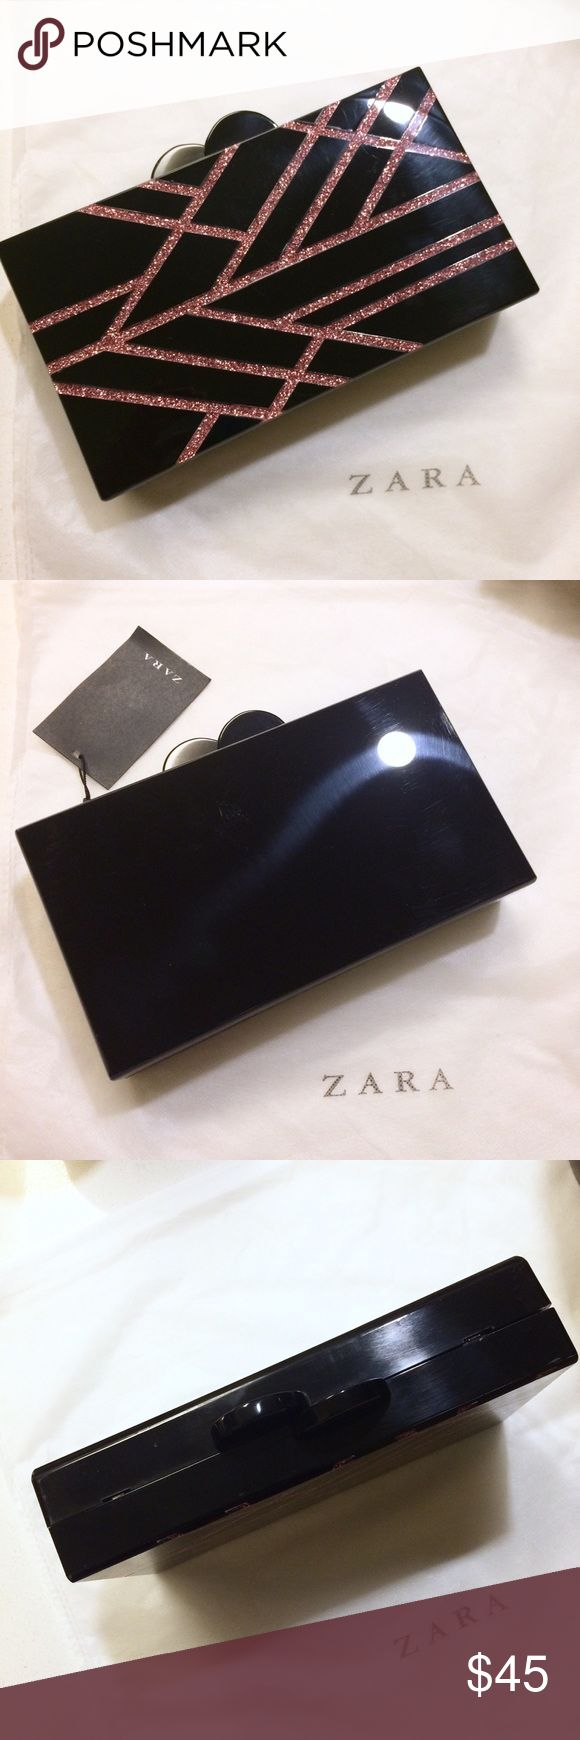 Black Pink Glitter Acrylic Evening Clutch Bag New with tags! This minaudière bag is a good size because your iPhone will fit into it! Detachable snake chain. Design reminds me of Edie Parker's acrylic bags. There are some light scratches and smudges here and there, but nothing obvious. NO TRADES!! 🚫🚫🚫 Zara Bags Clutches & Wristlets